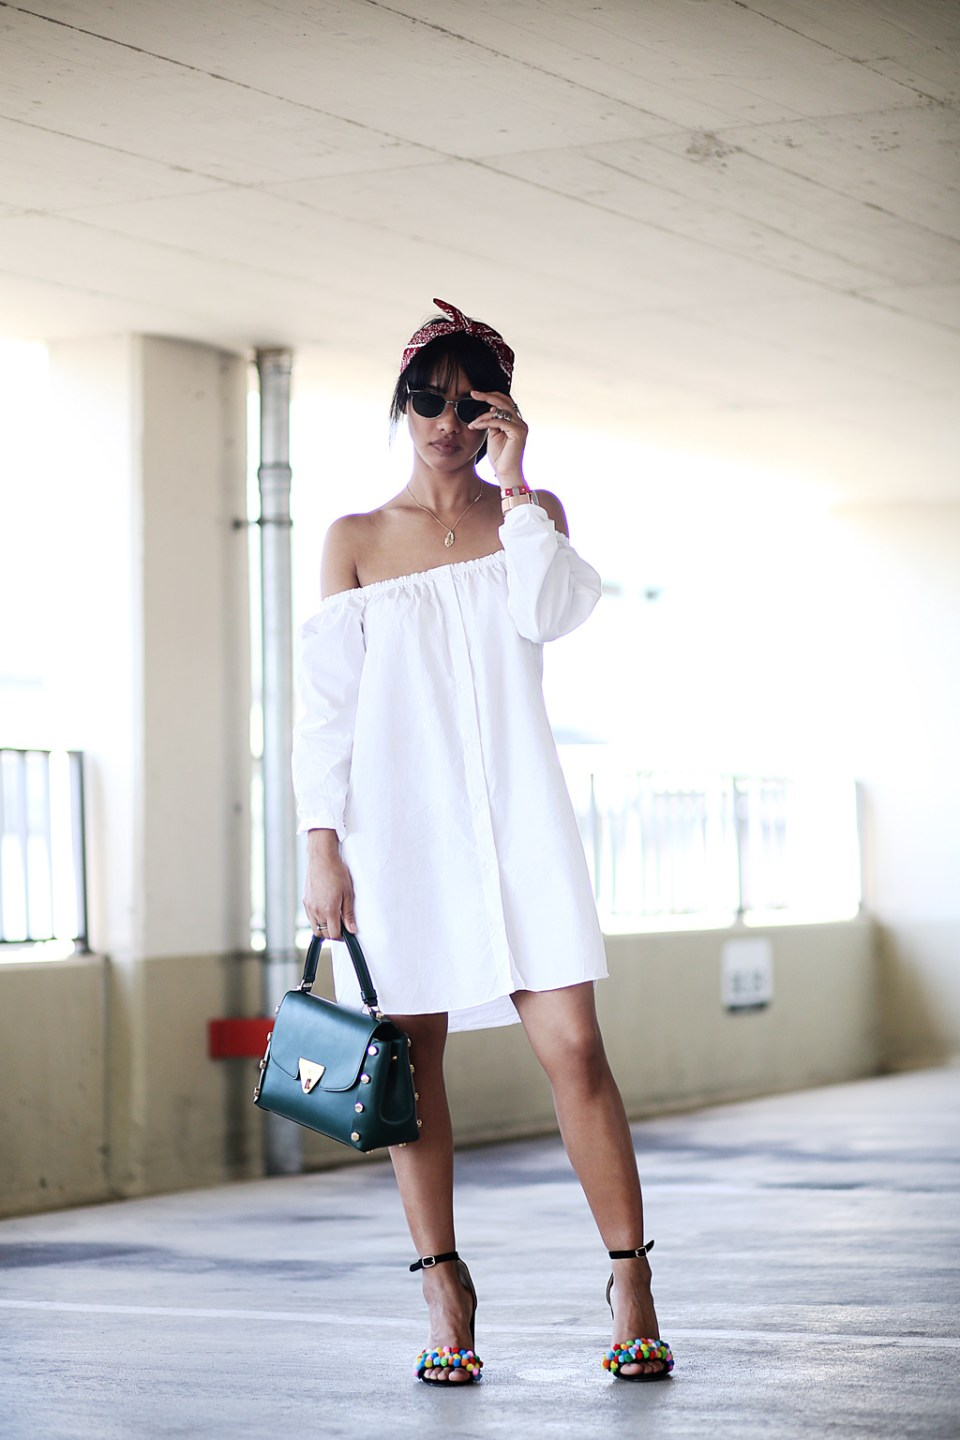 thefashionanarchy_blogger_fashionblog_modeblog_styleblog_monrob_pompons_offshoulder_kleid_muenchen_munich_sommer_outfit_look_4